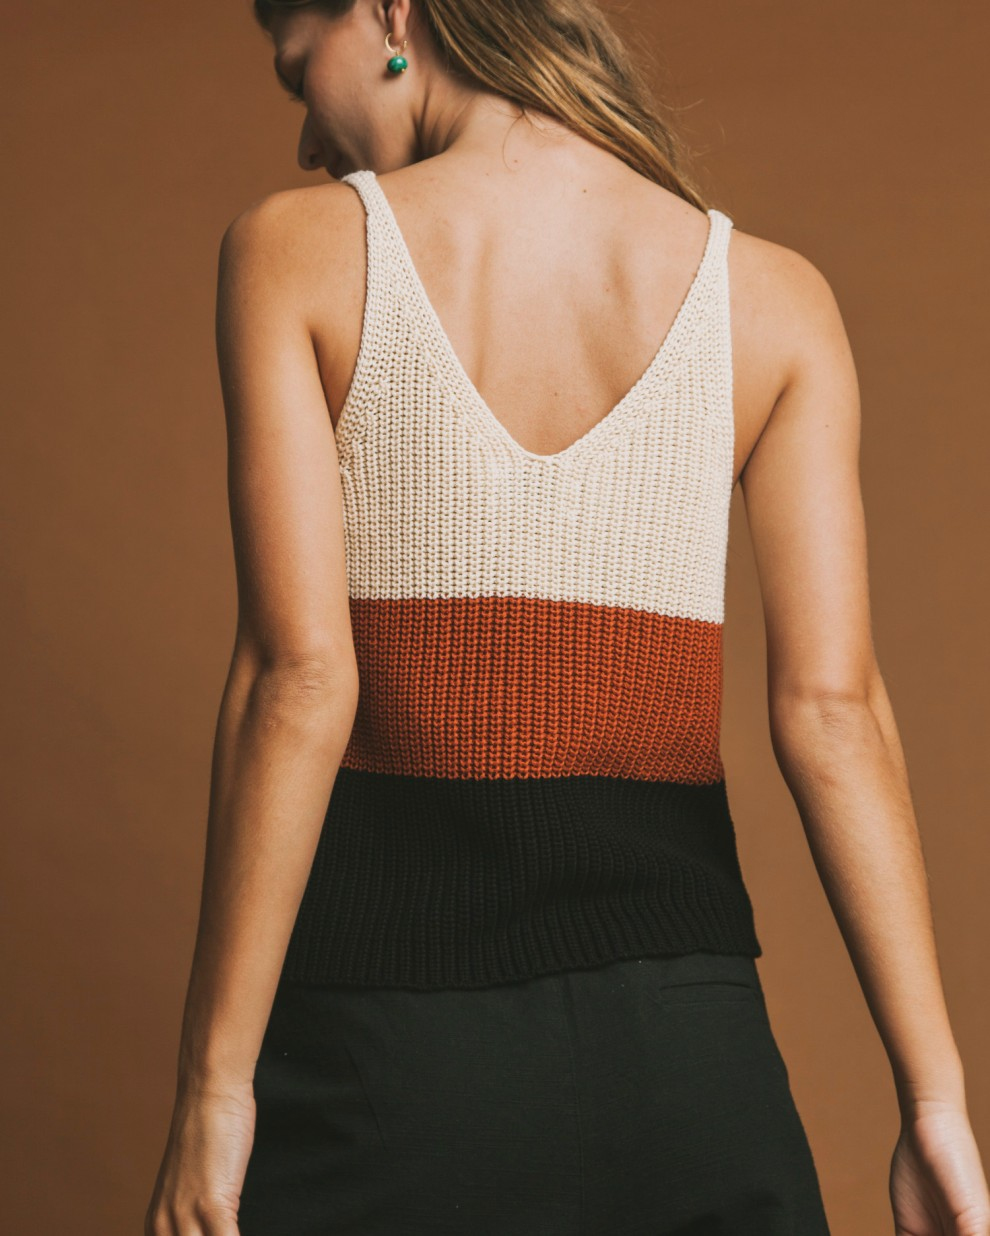 Multicolor knitted top